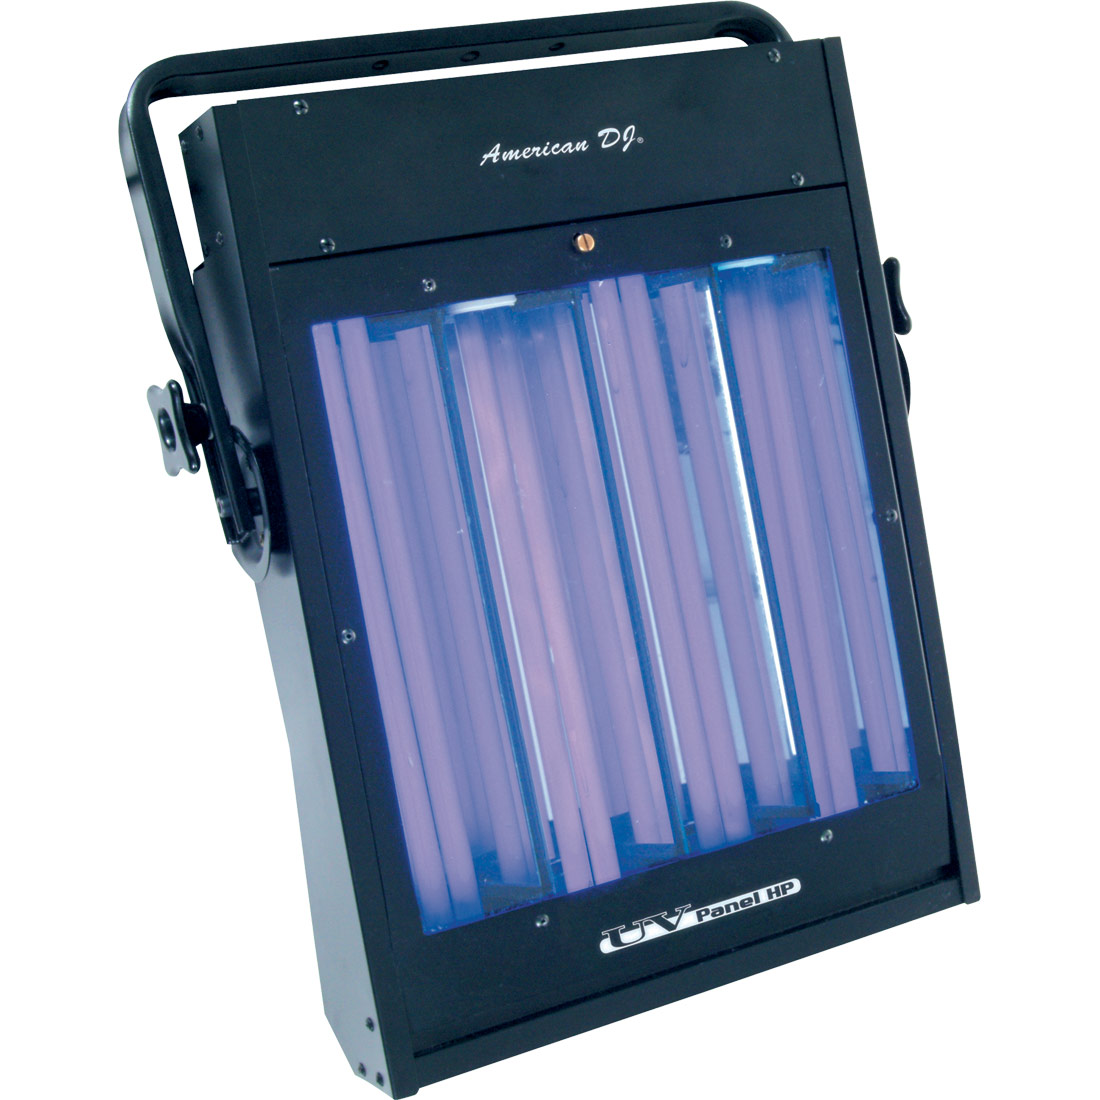 UV-PANEL HQ incl. lamps